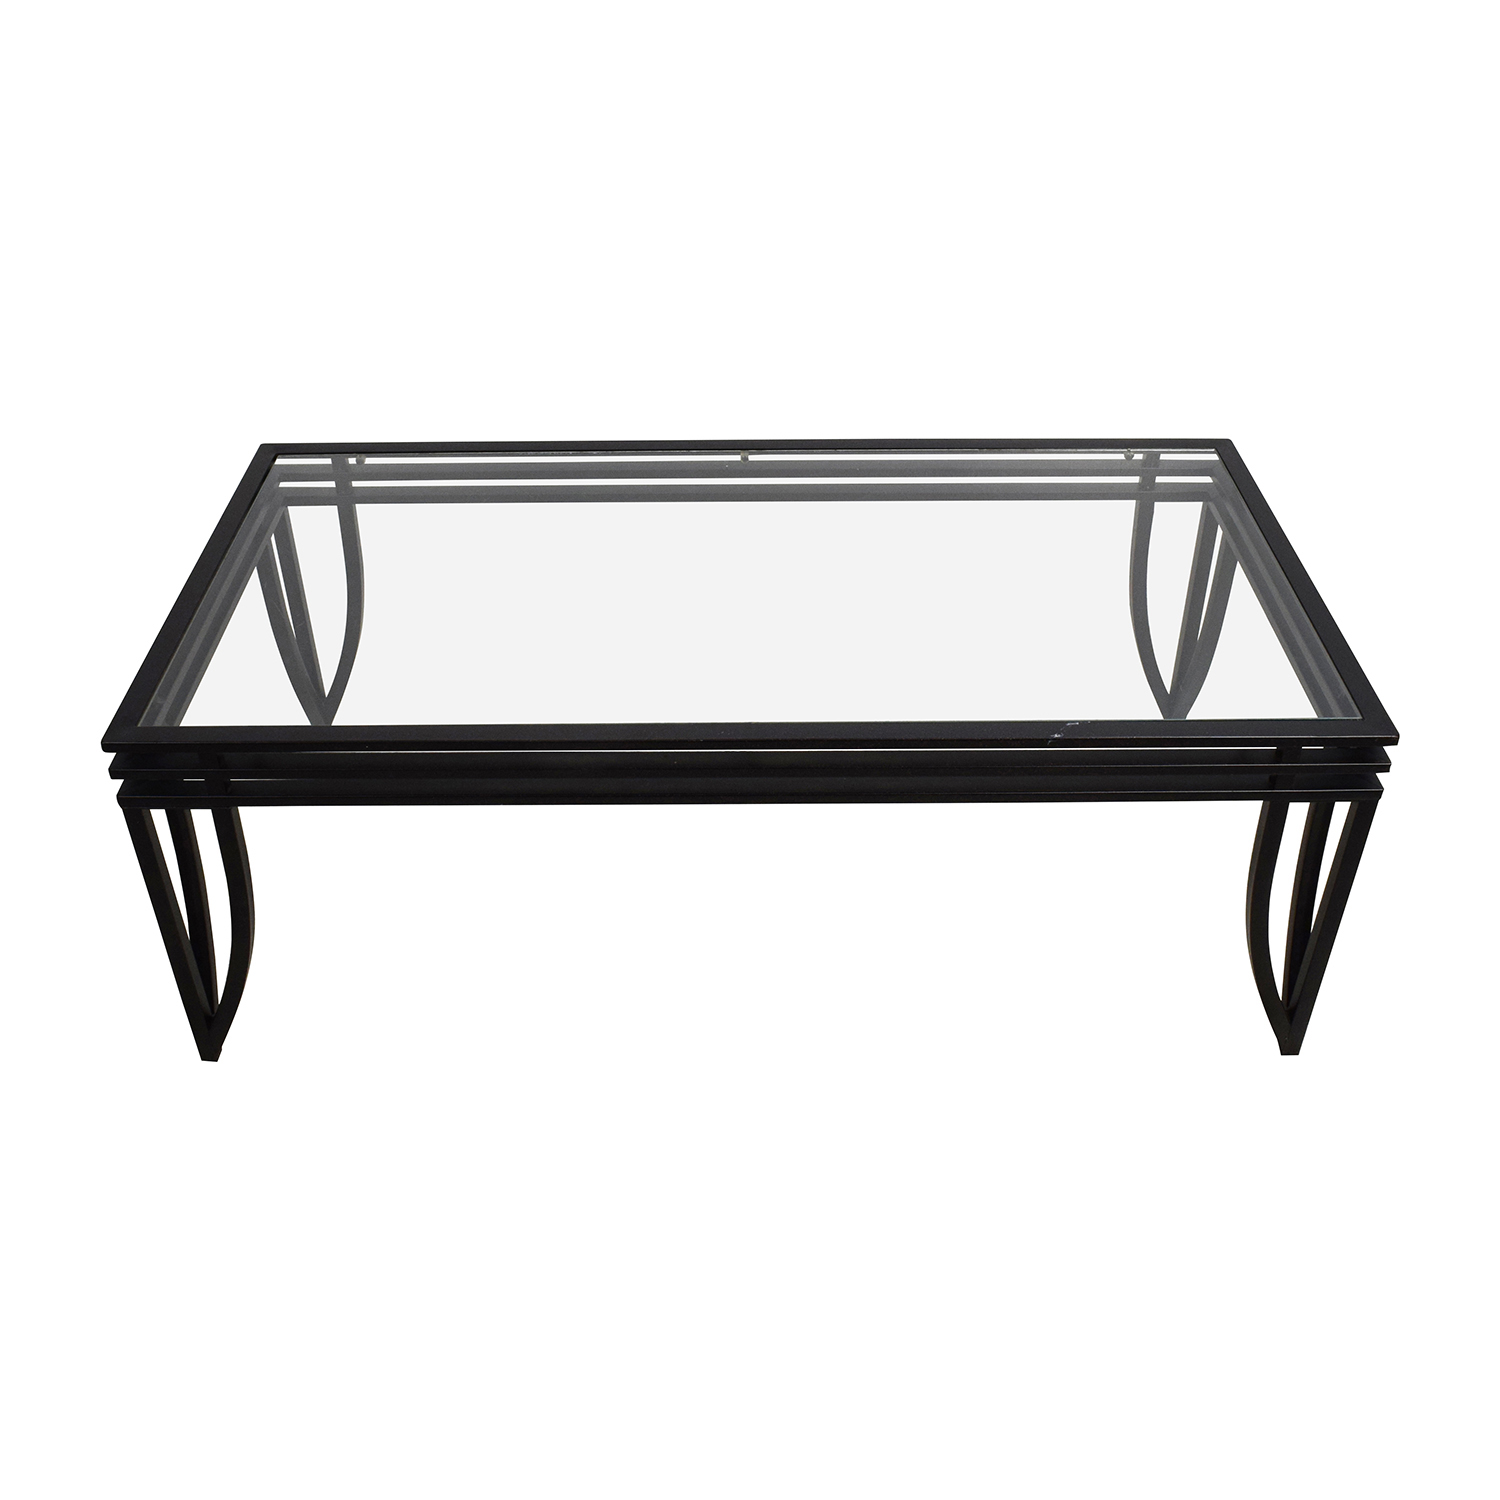 59% OFF Wood and Glass Oval Coffee Table Tables